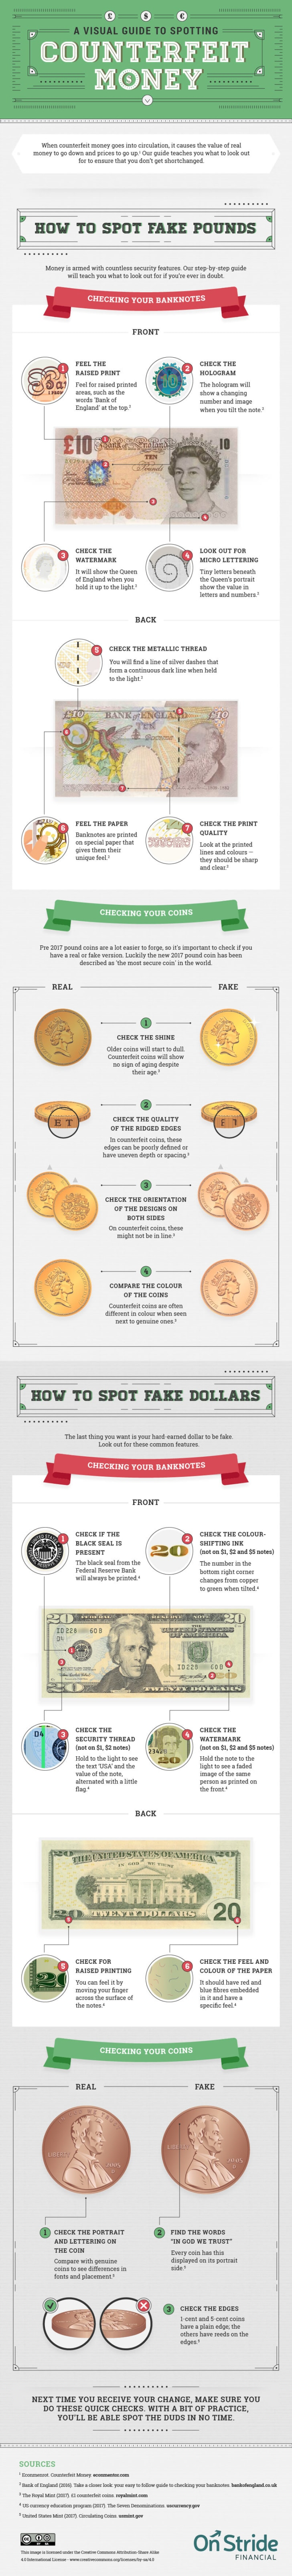 An infographic showing security features of dollars and pounds